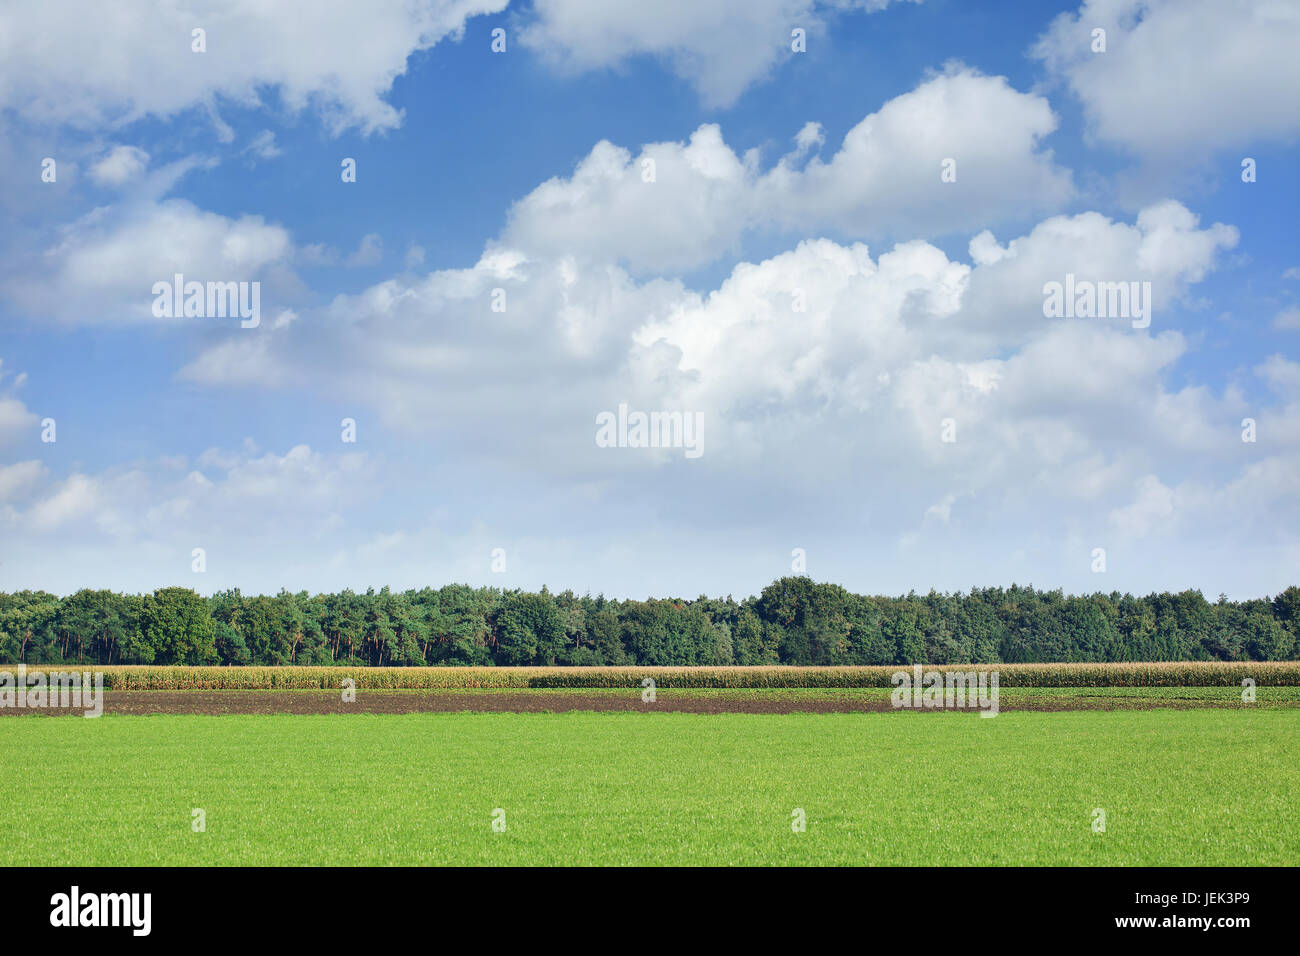 Landscape in agricultural area with dramatic clouds, The Netherlands - Stock Image